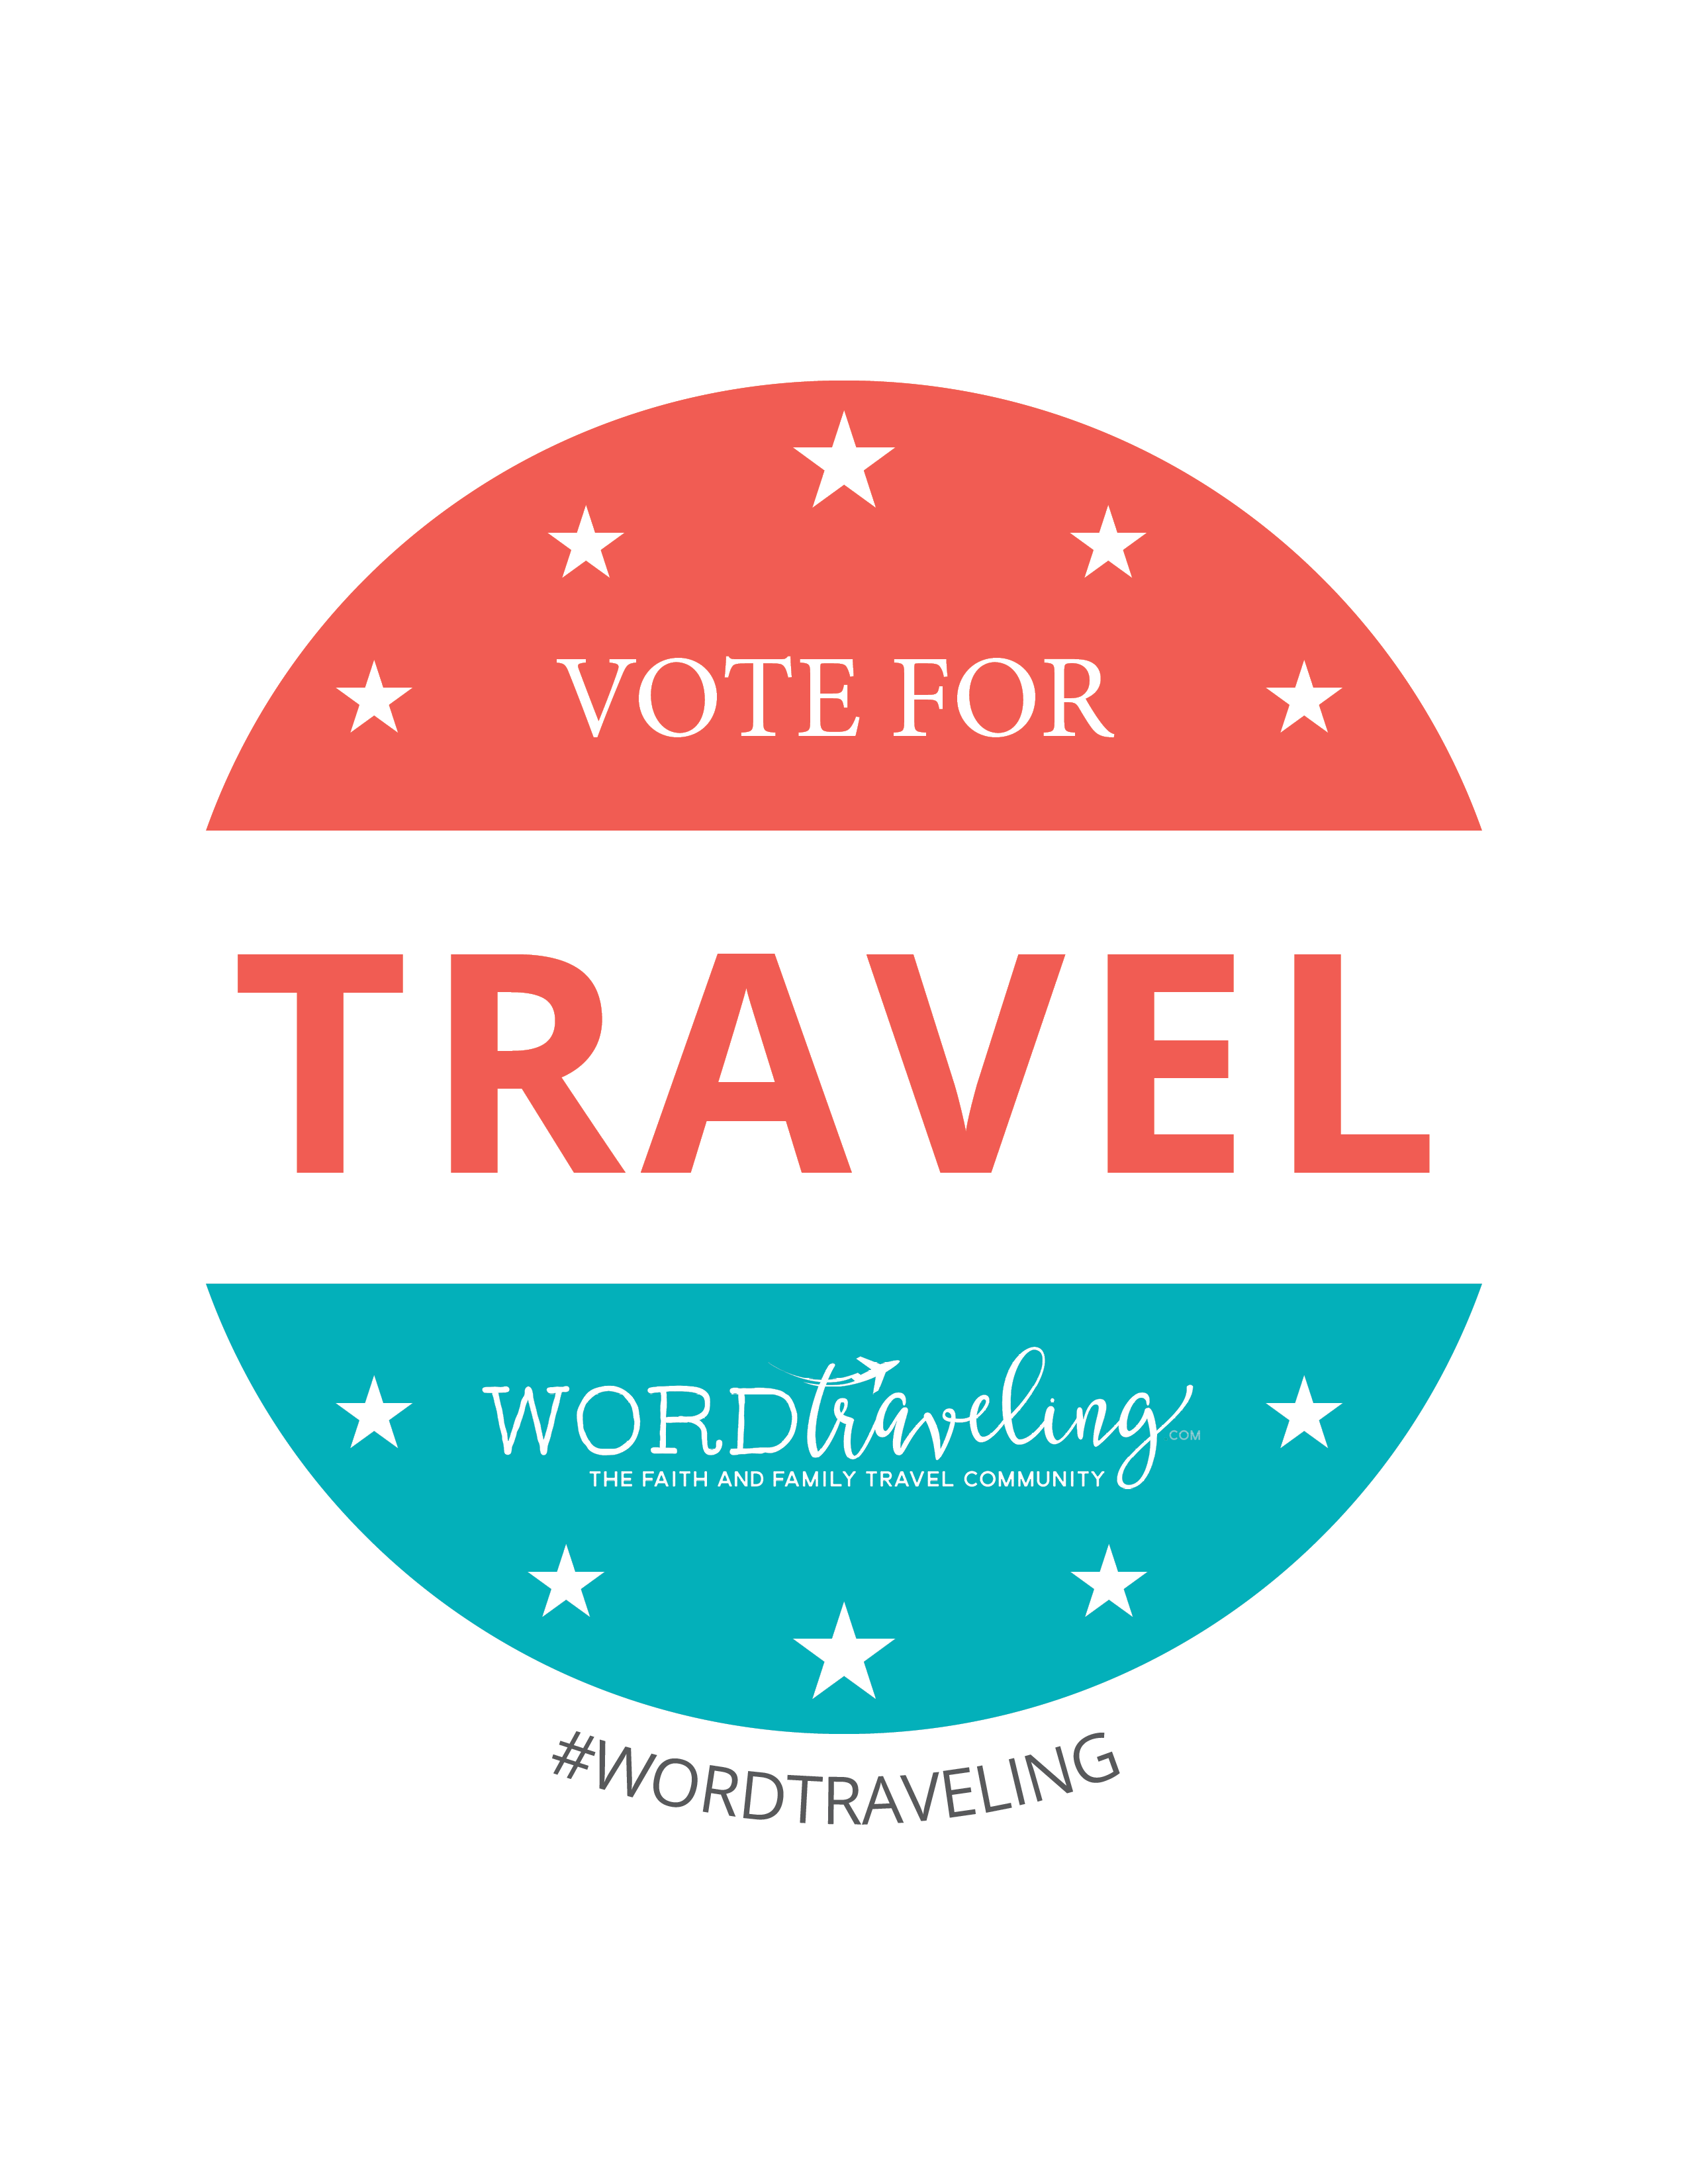 travel network sweepstakes vote for travel 2016 and win a fabulous vacation giveaway 4538